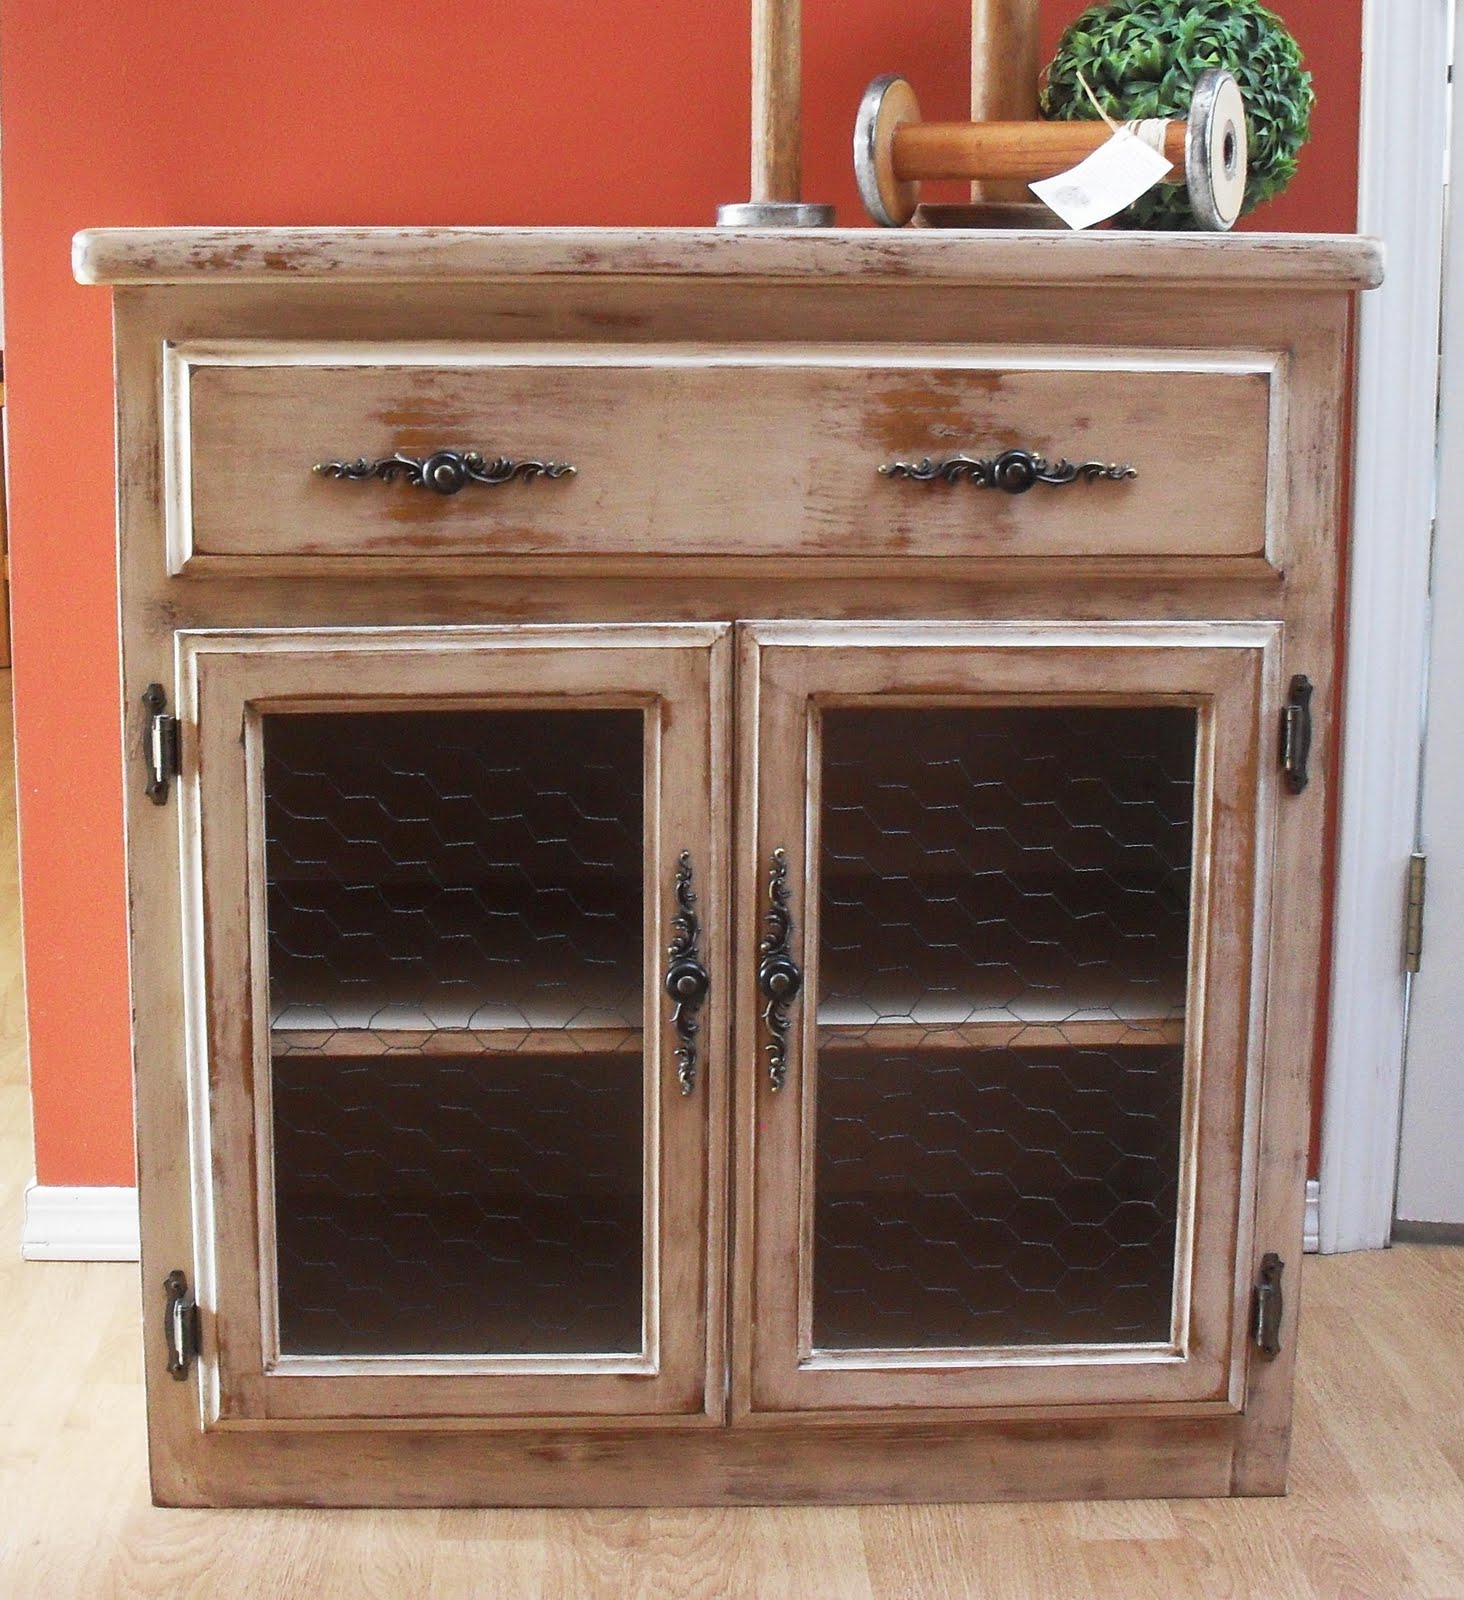 Distressed Kitchen Cabinet Doors: Home Frosting: Distressed Cabinet